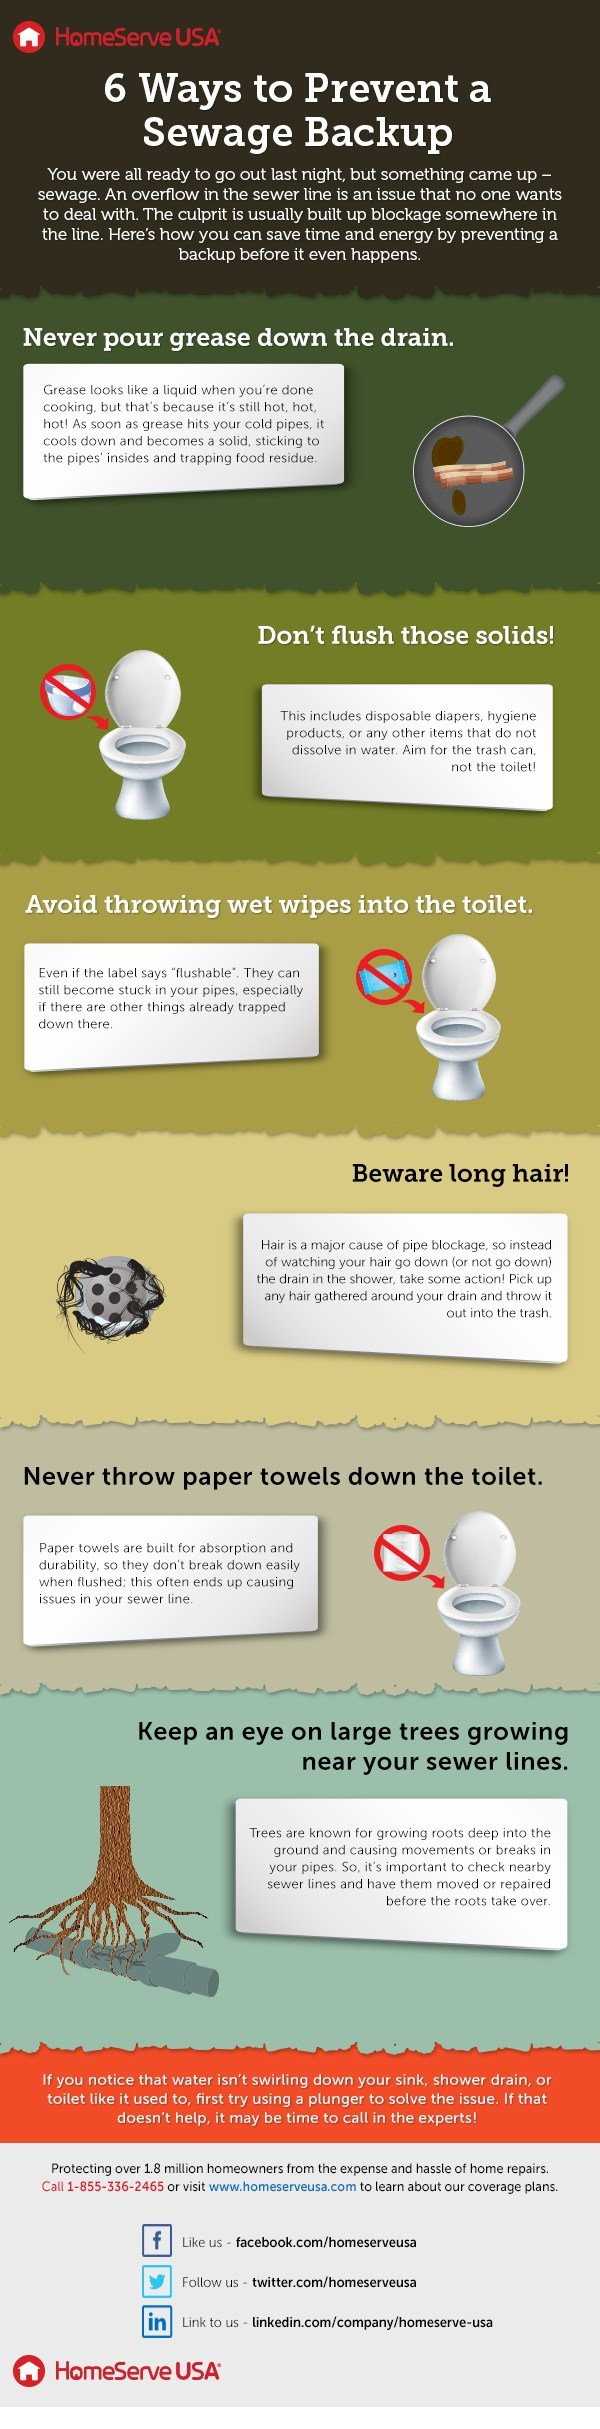 Sewage Backup Prevention Tips